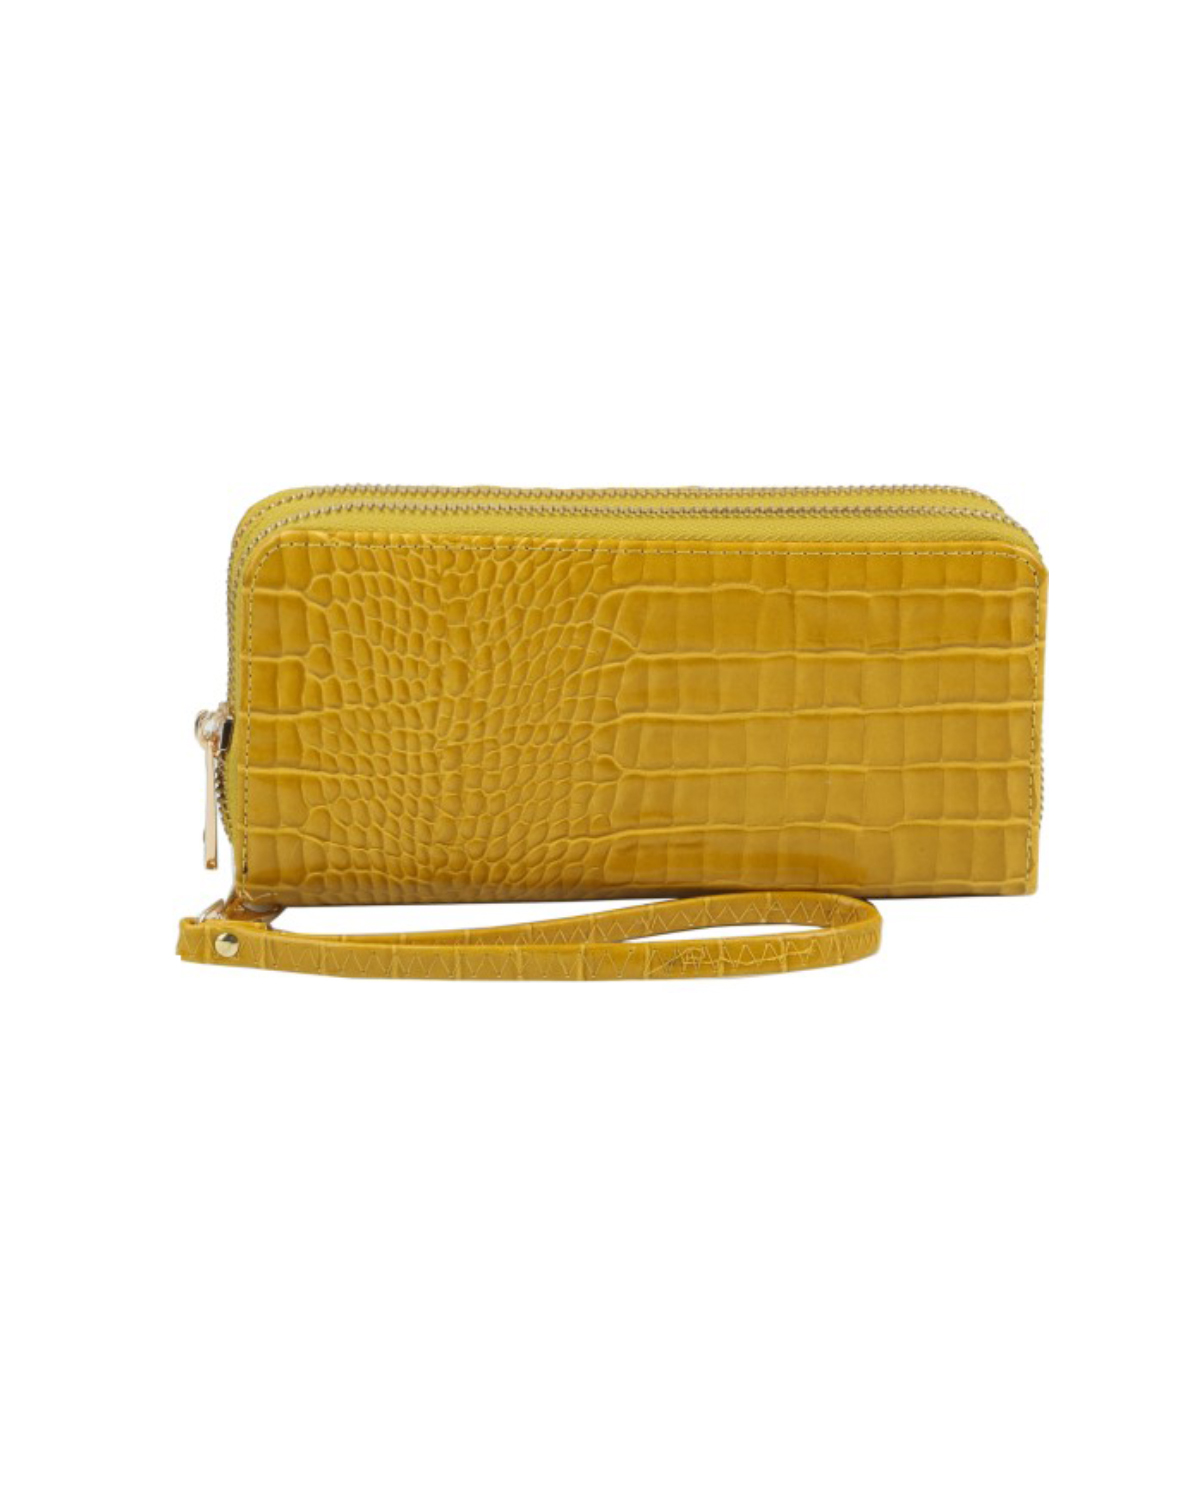 W02CD(YL)-wholesale-wallet-alligator-ostrich-leatherette-flap-tri-fold-vegan-leather-twist-lock-gold-frame(0).jpg